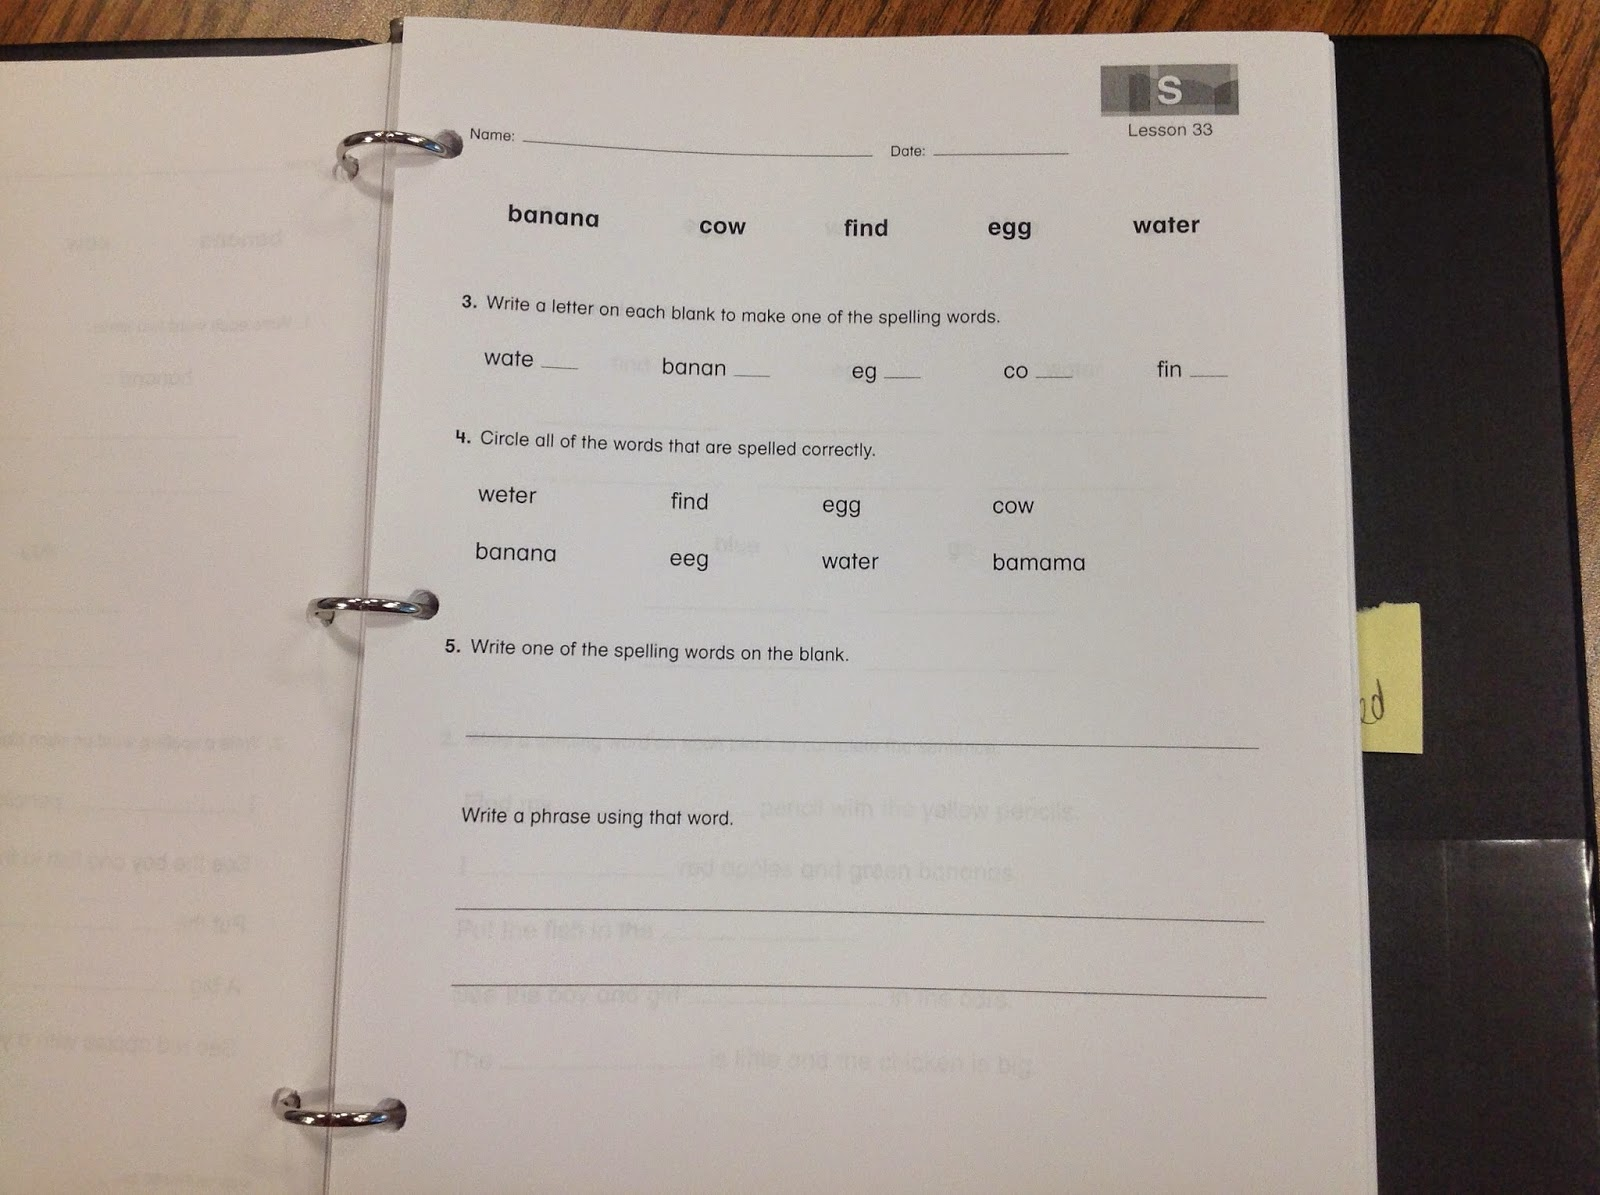 Worksheets Edmark Reading Program Worksheets teach love autism edmark reading program in an classroom there is another piece to that can be purchased seperately i got these materials on a jump drive d